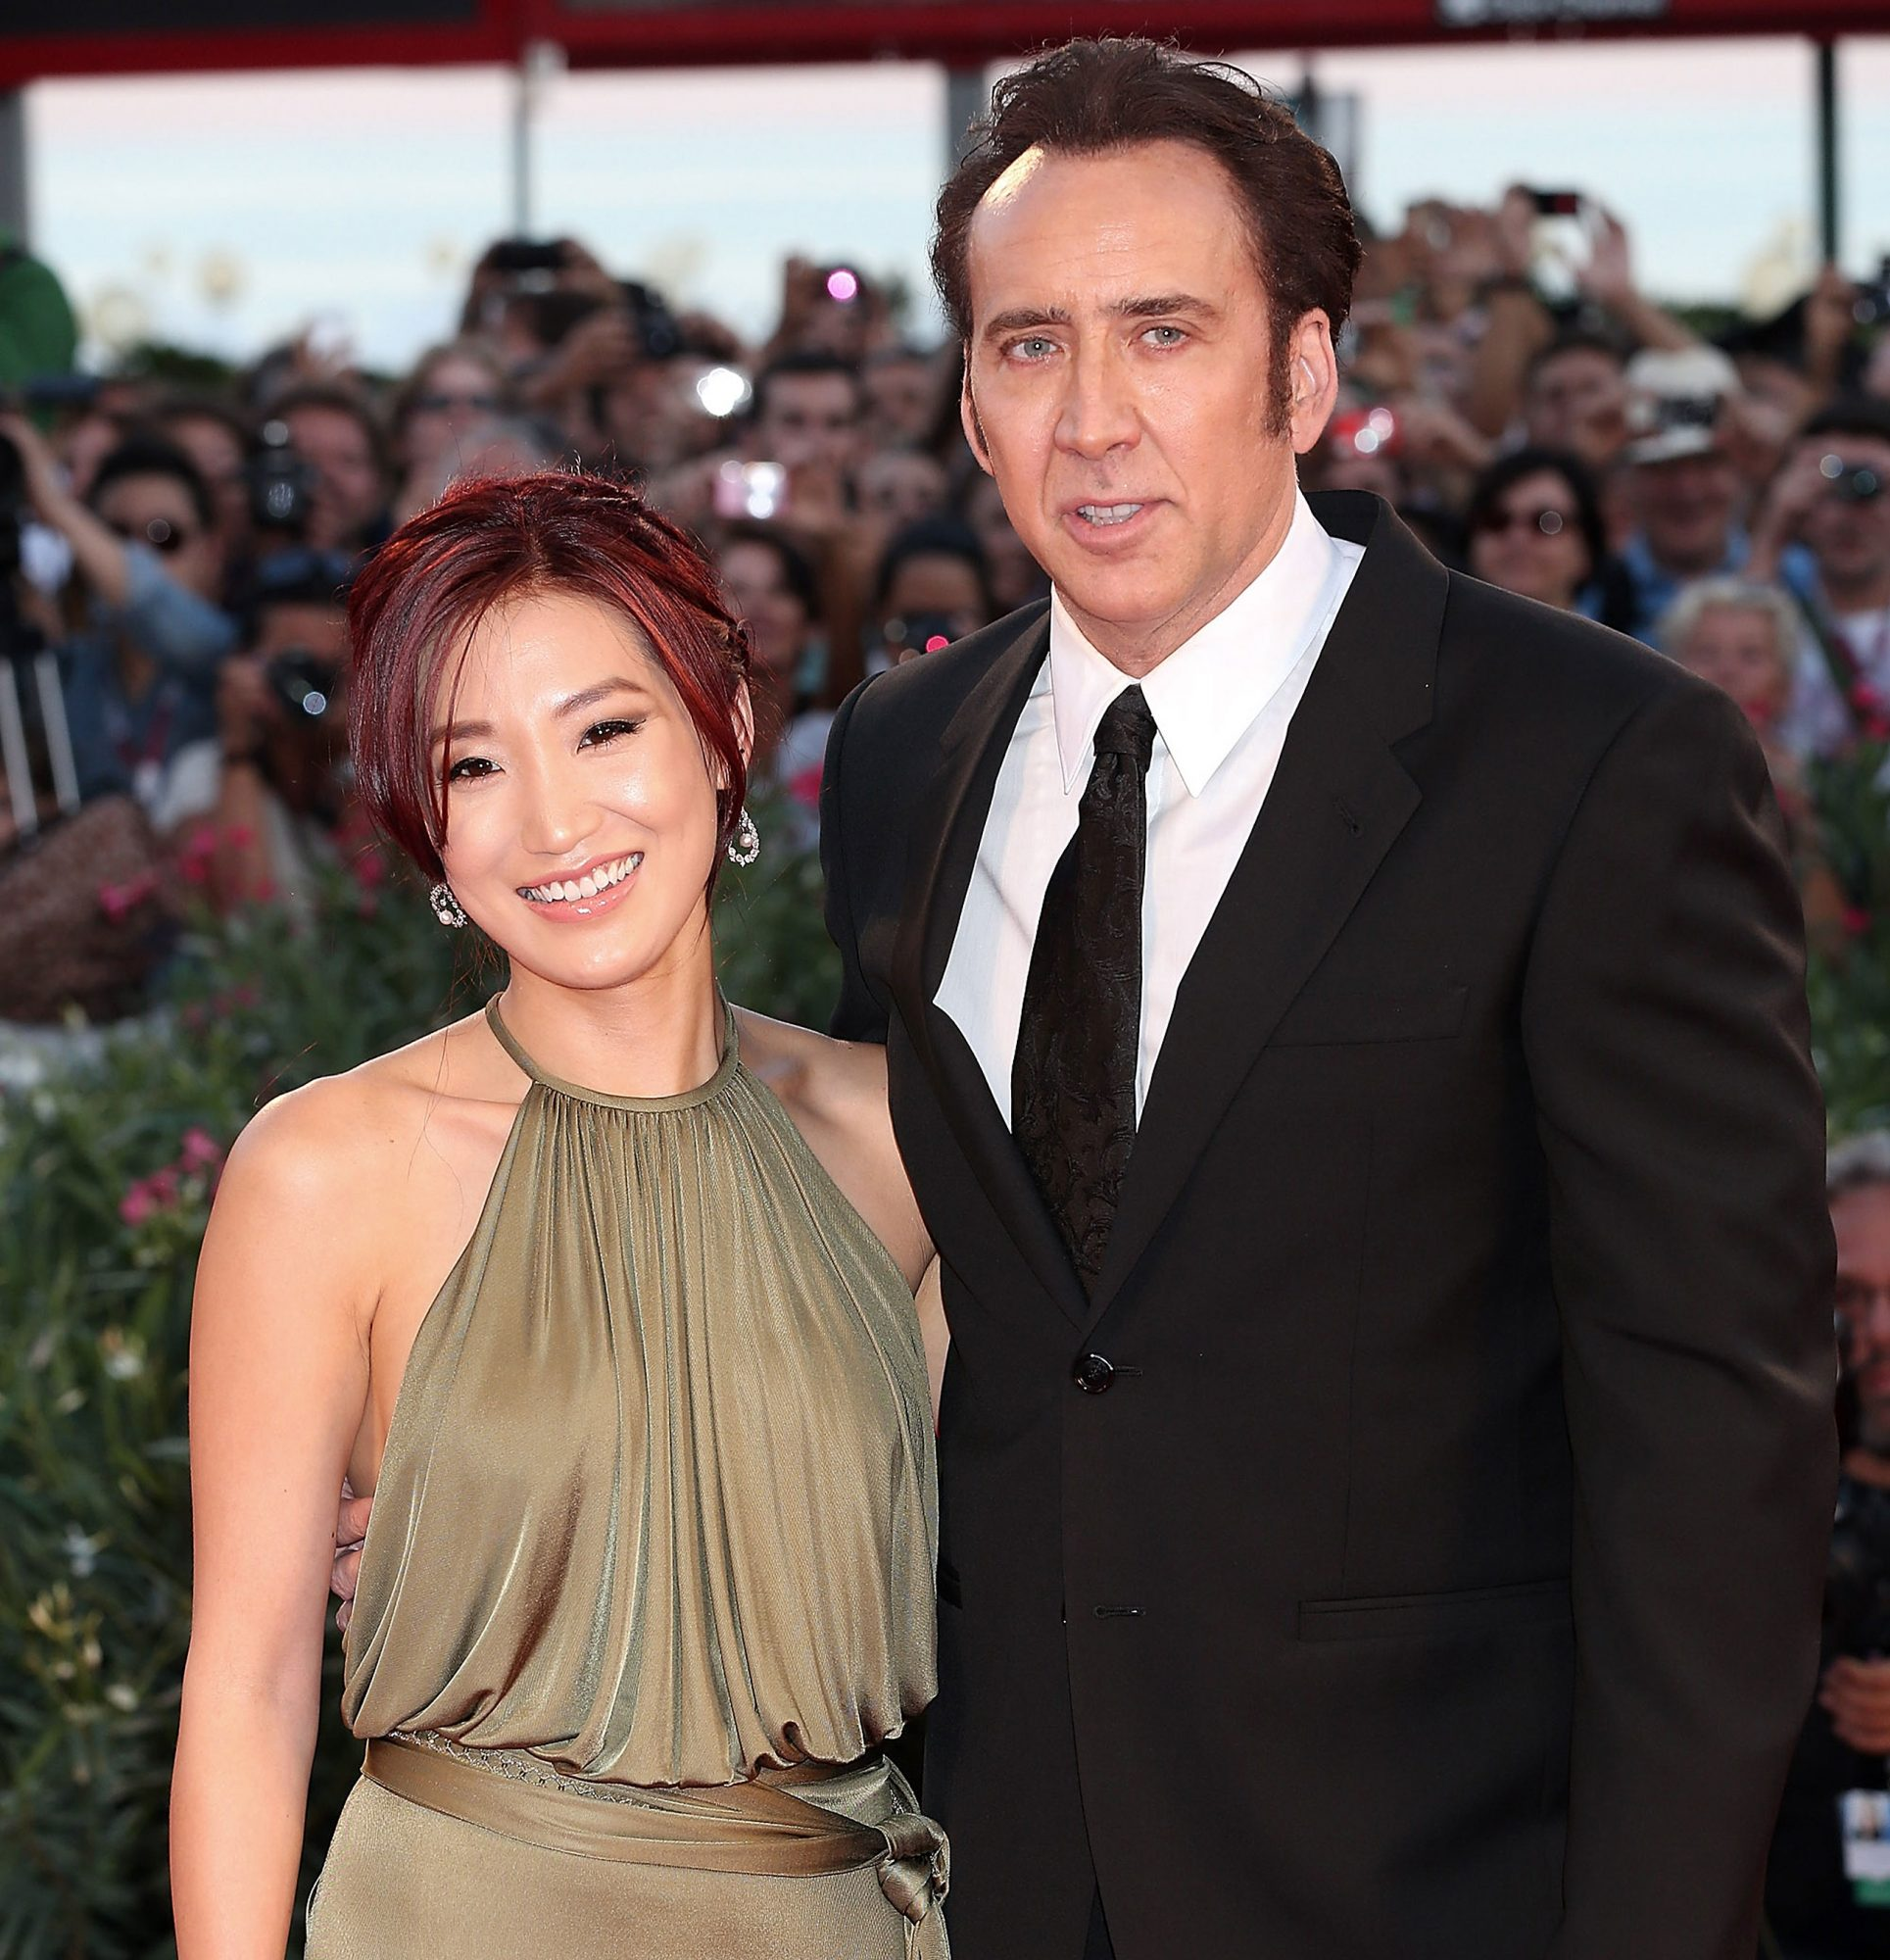 Nicolas Cage Accused of Abuse by Ex-Girlfriend | PEOPLE.com